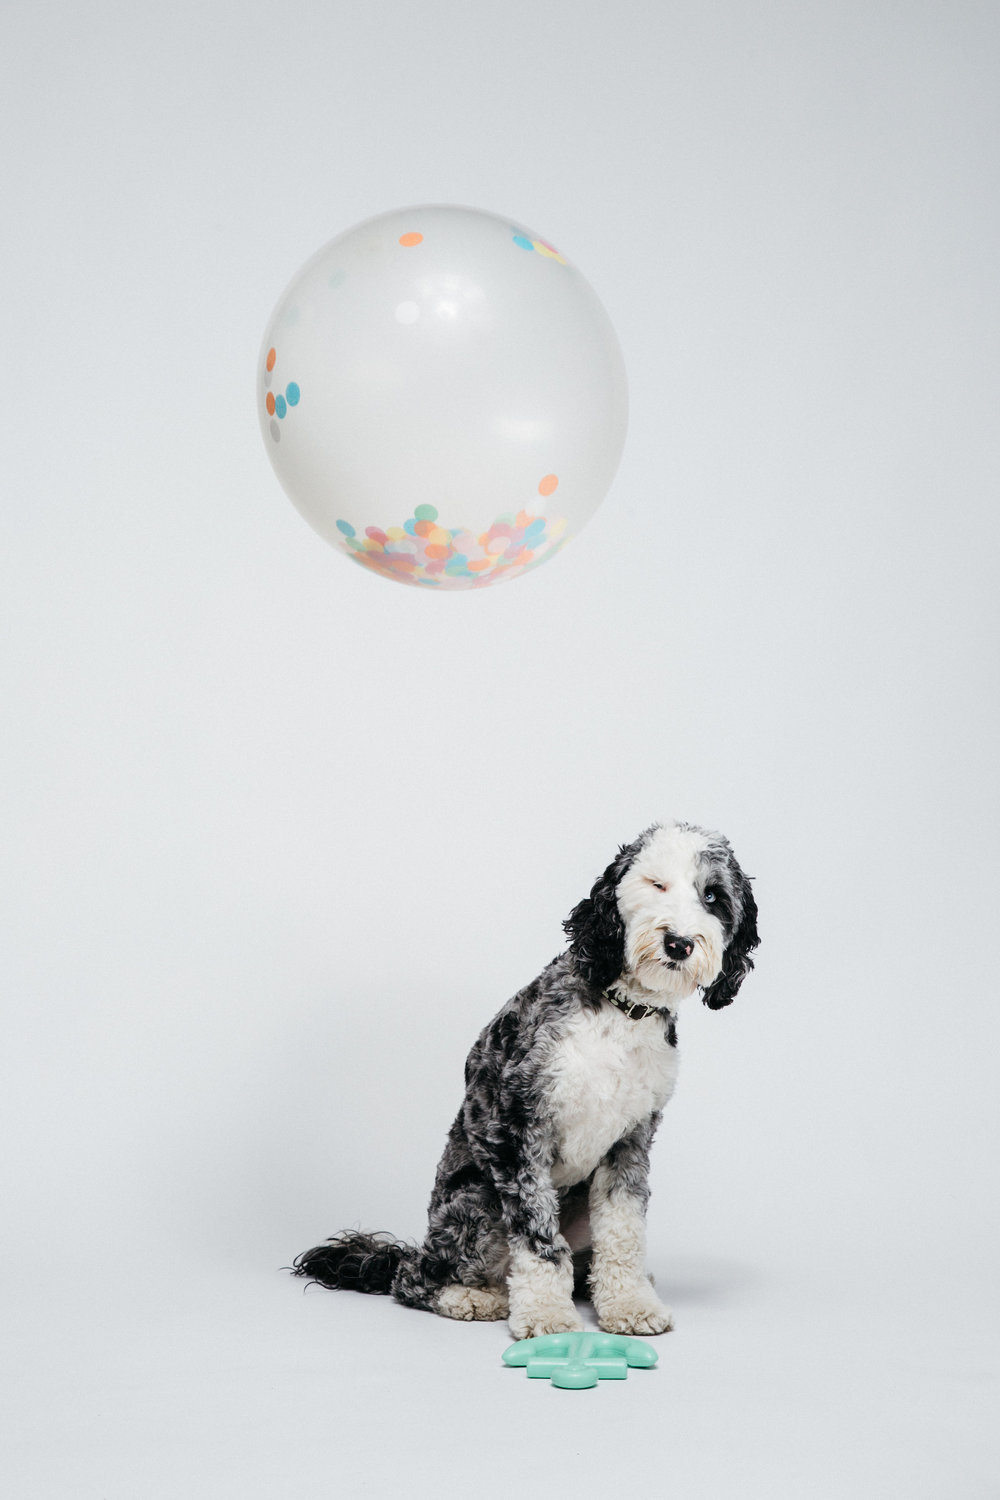 Waggo-Anchor-Toy-Styling-Dog-Pet-Graphic-Designer-Heather-Maehr.jpg